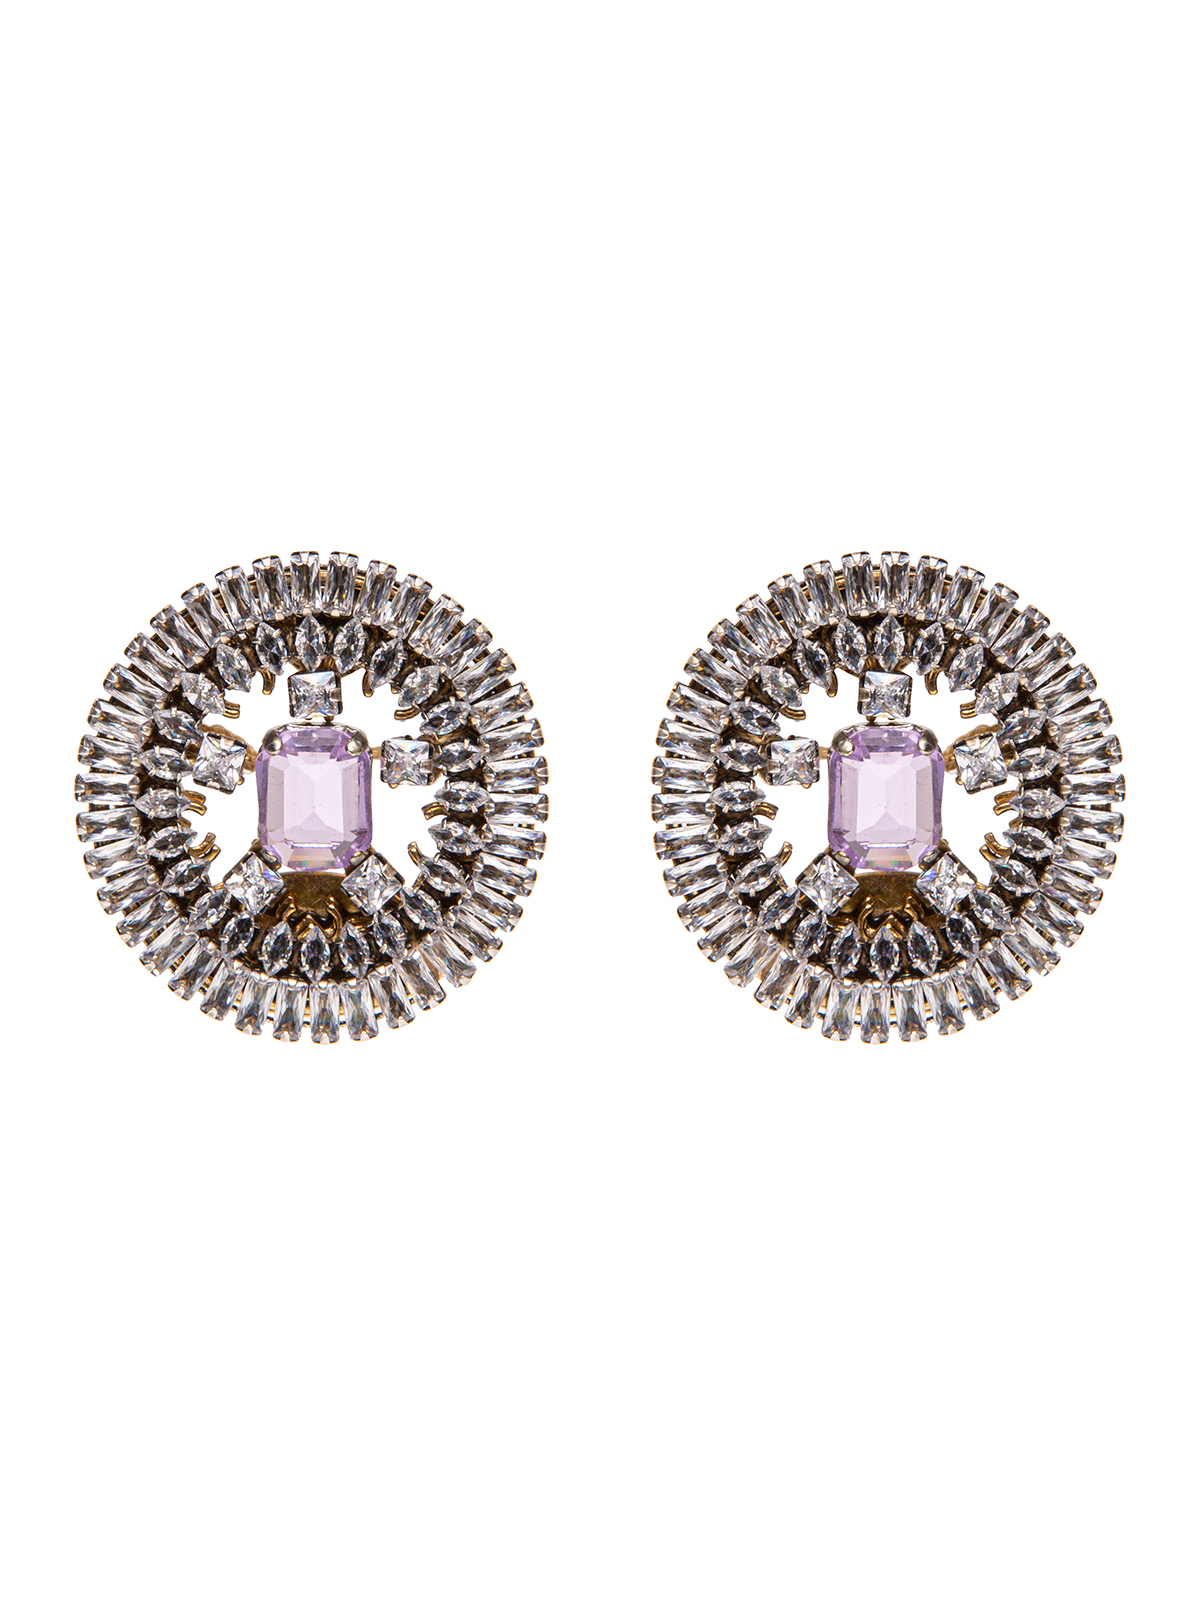 Jewel round earrings embroidered with baguettes and central stone